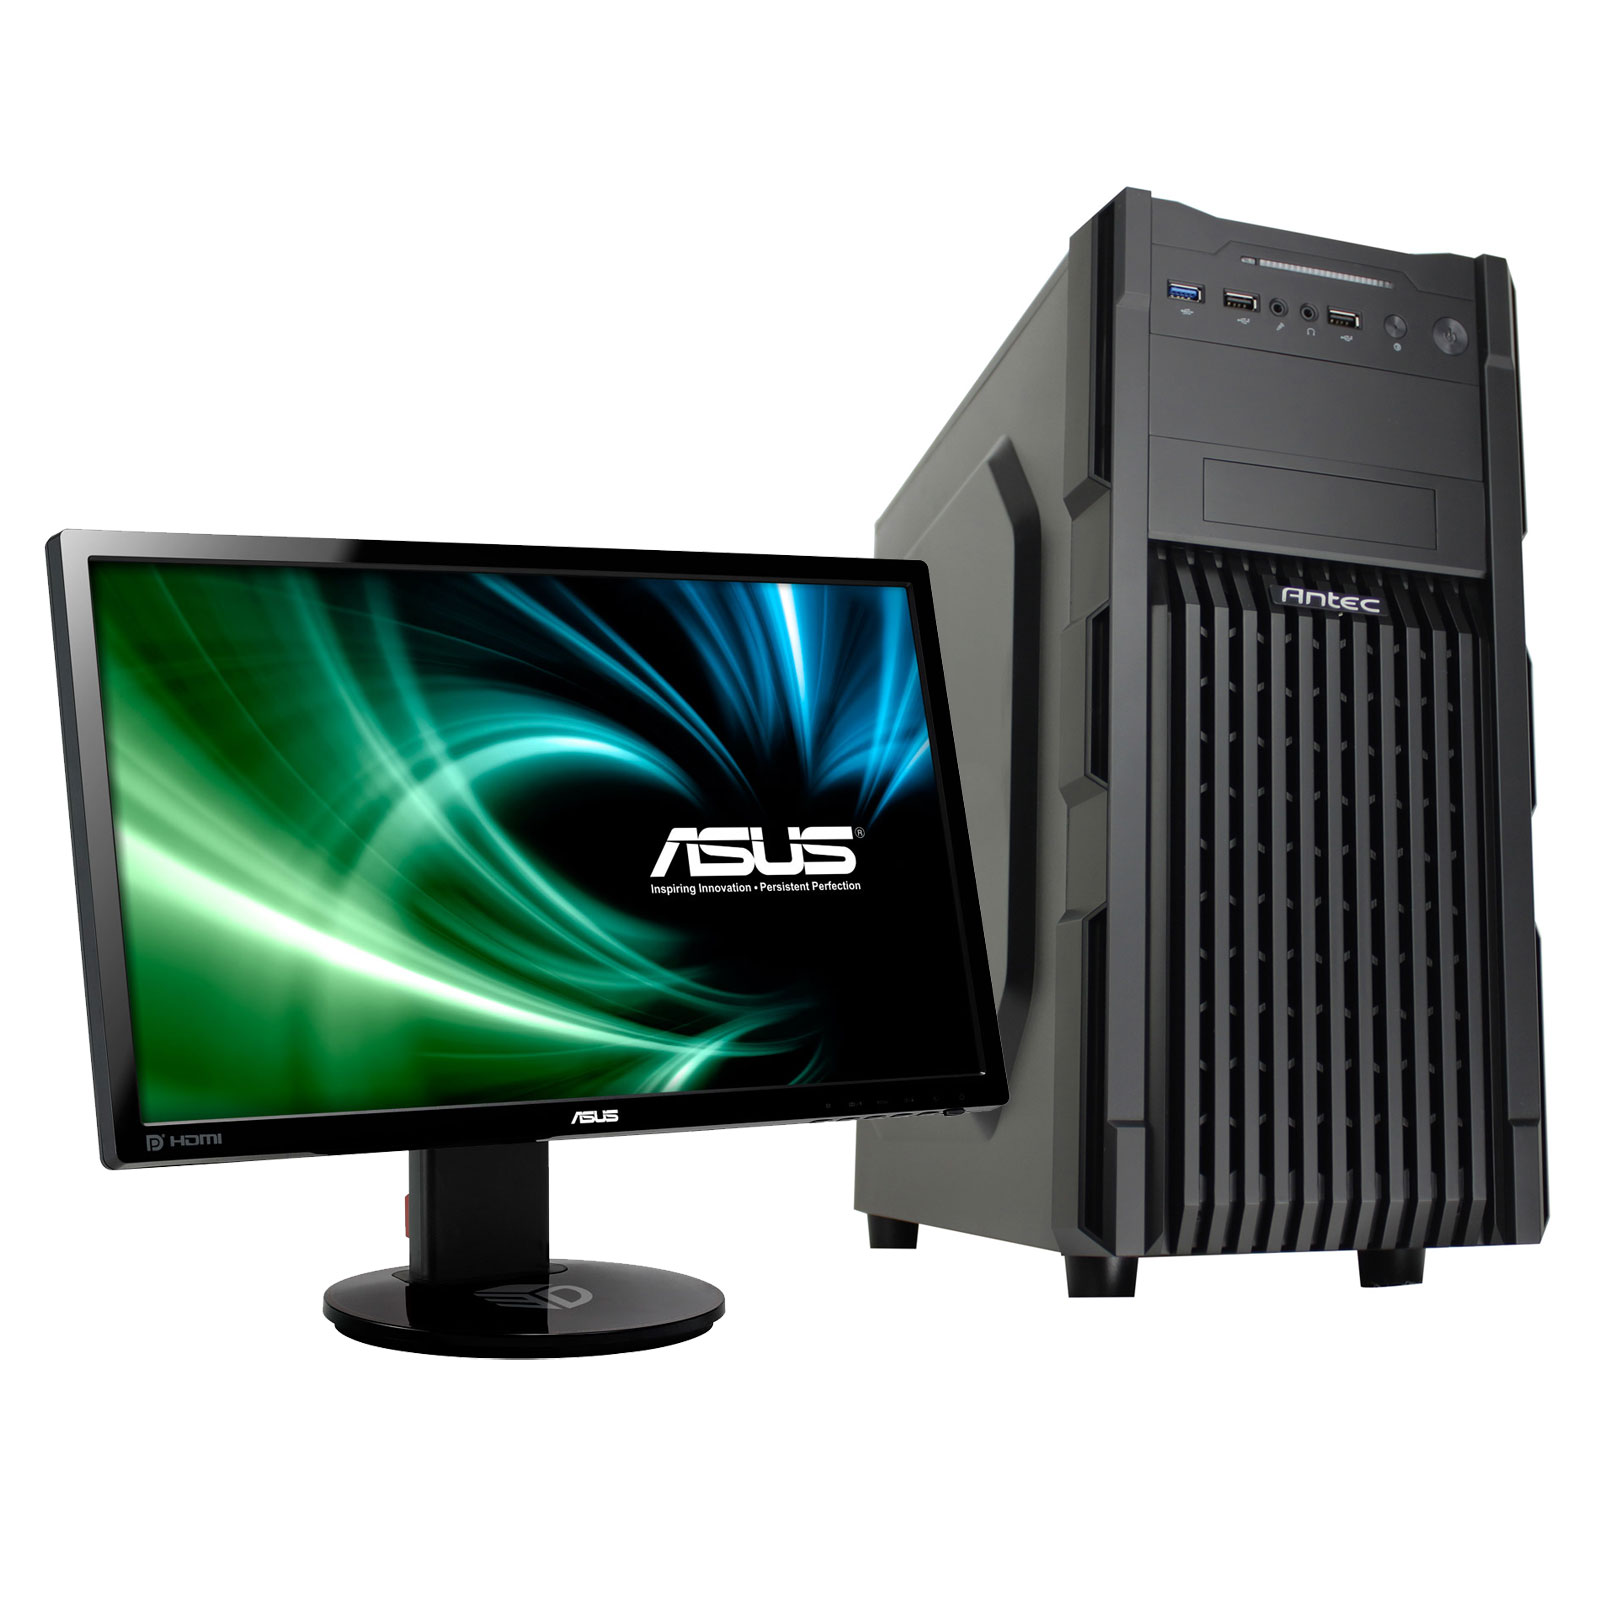 ldlc pc fortress asus 24 led 3d vg248qe pc de. Black Bedroom Furniture Sets. Home Design Ideas